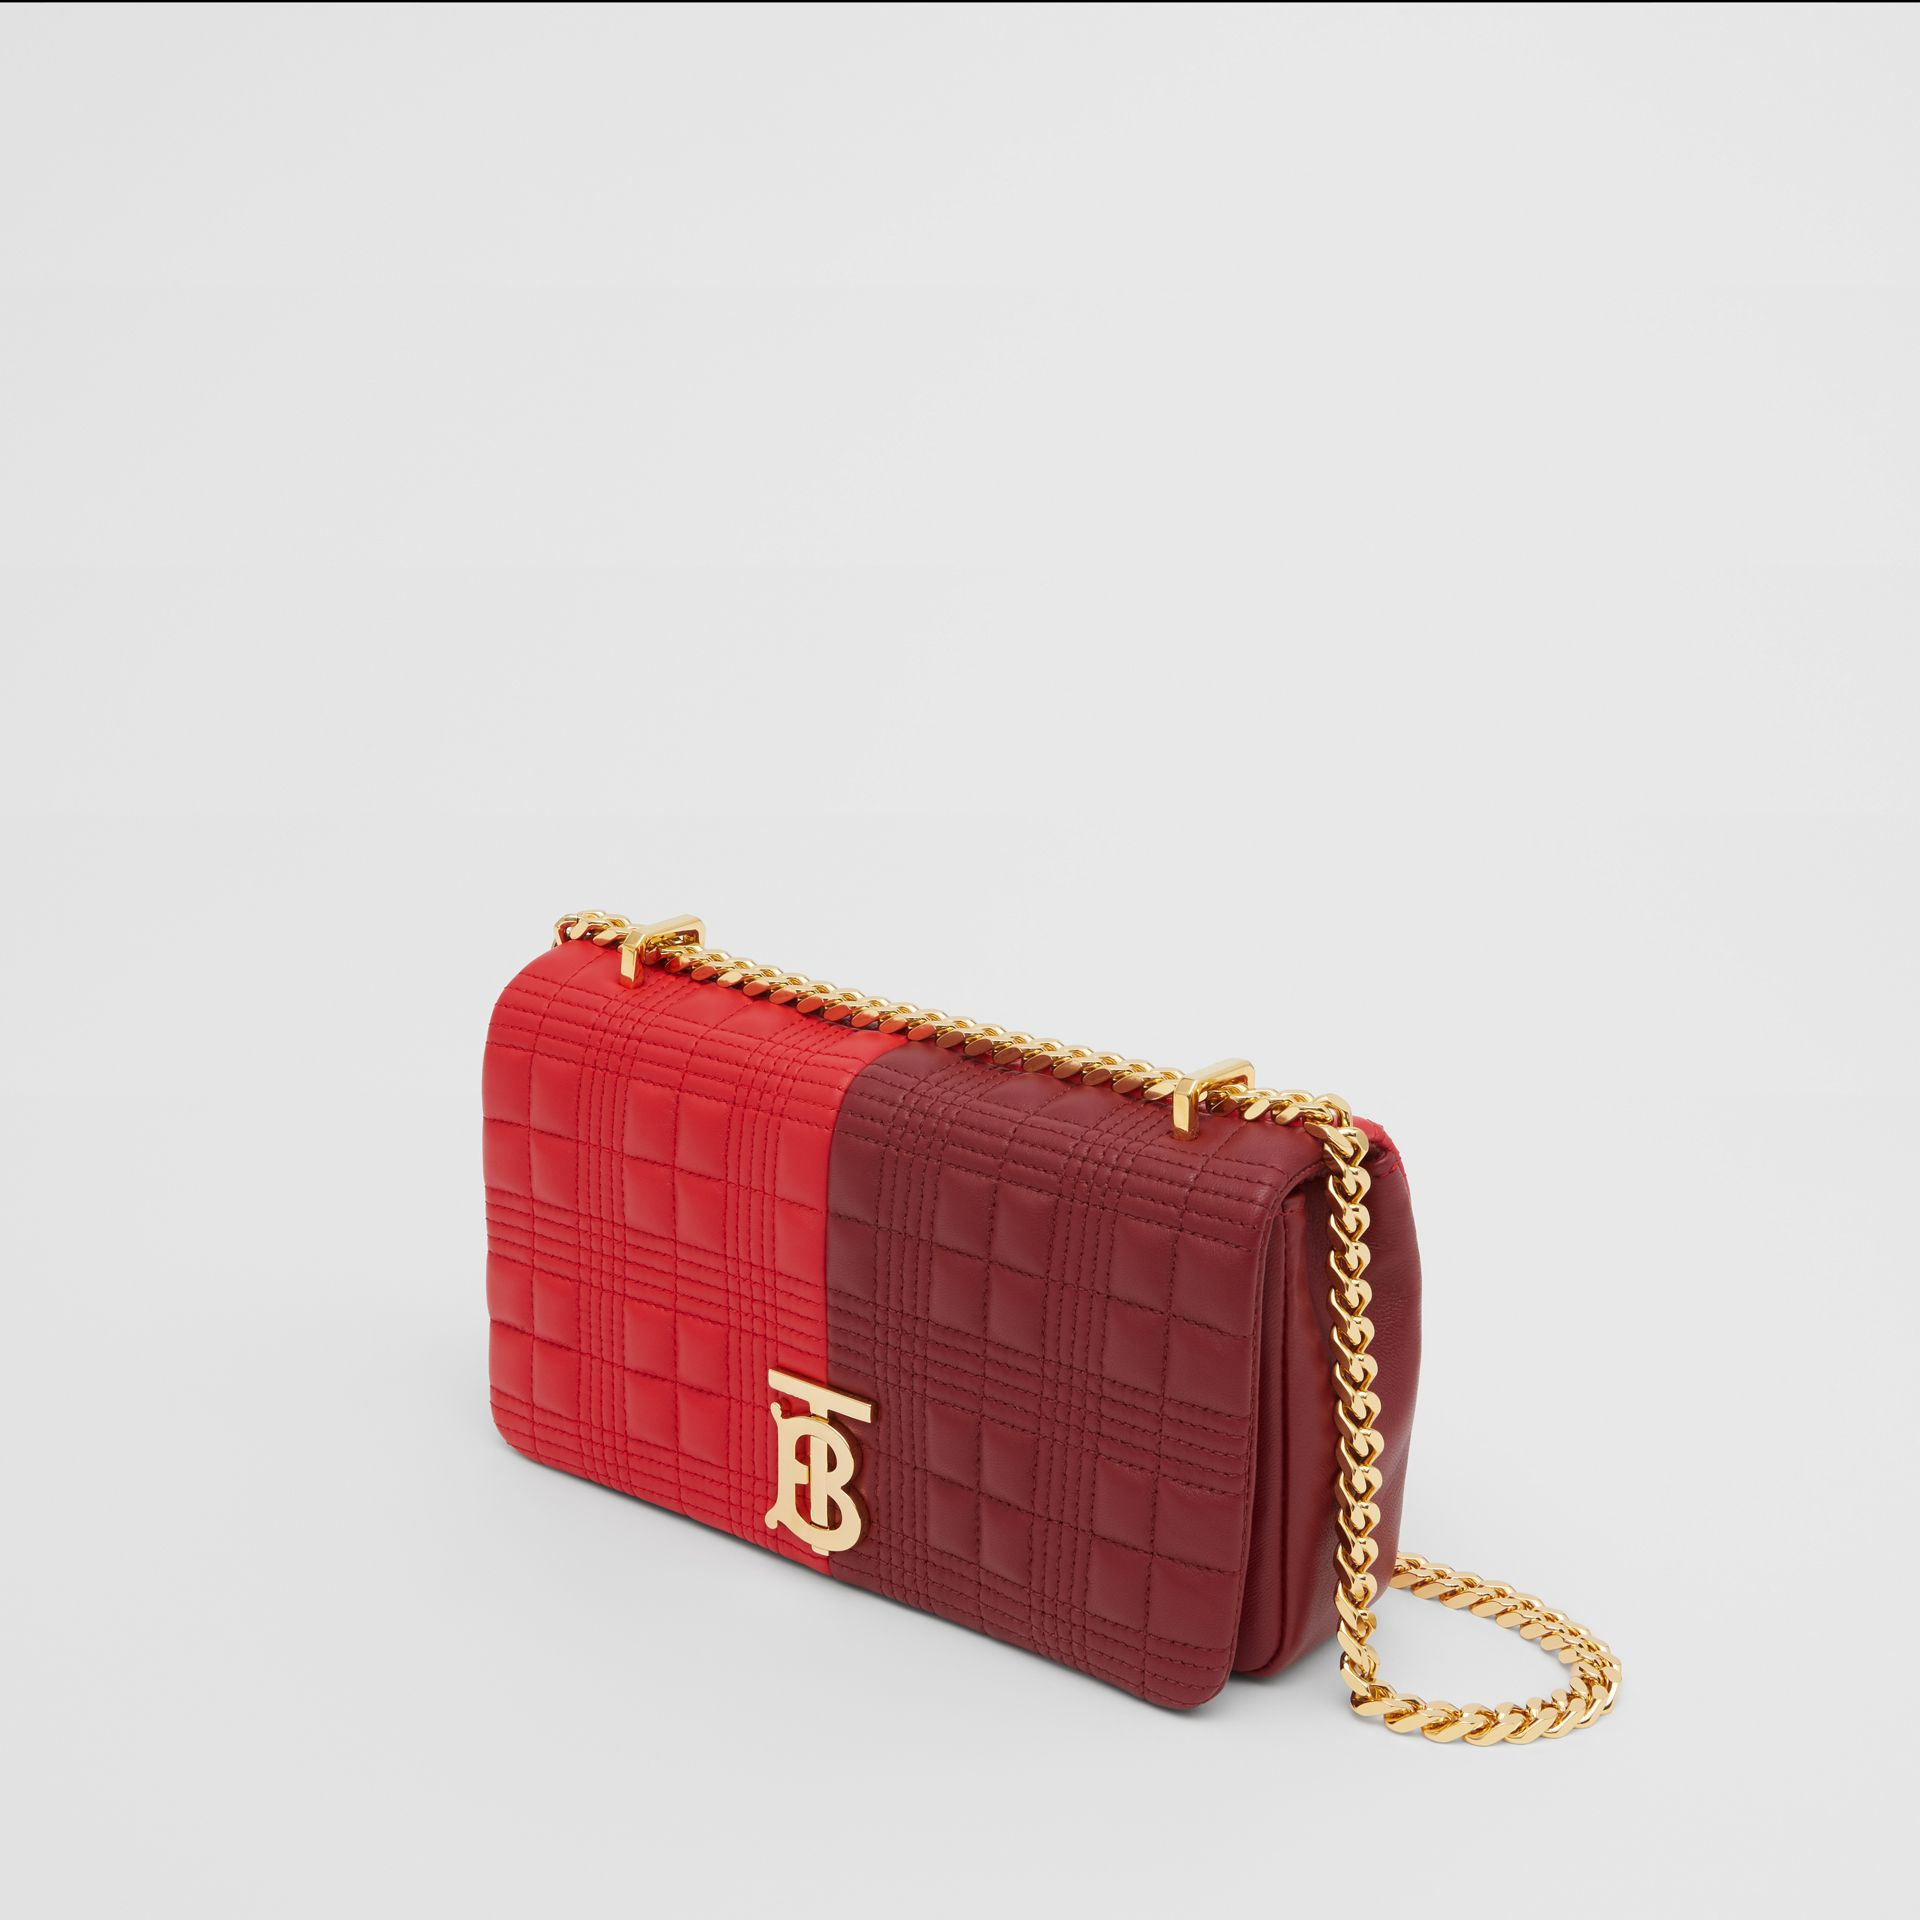 Small Quilted Colour Block Lambskin Lola Bag in Bright Red/burgundy - Women | Burberry Hong Kong S.A.R. - gallery image 3